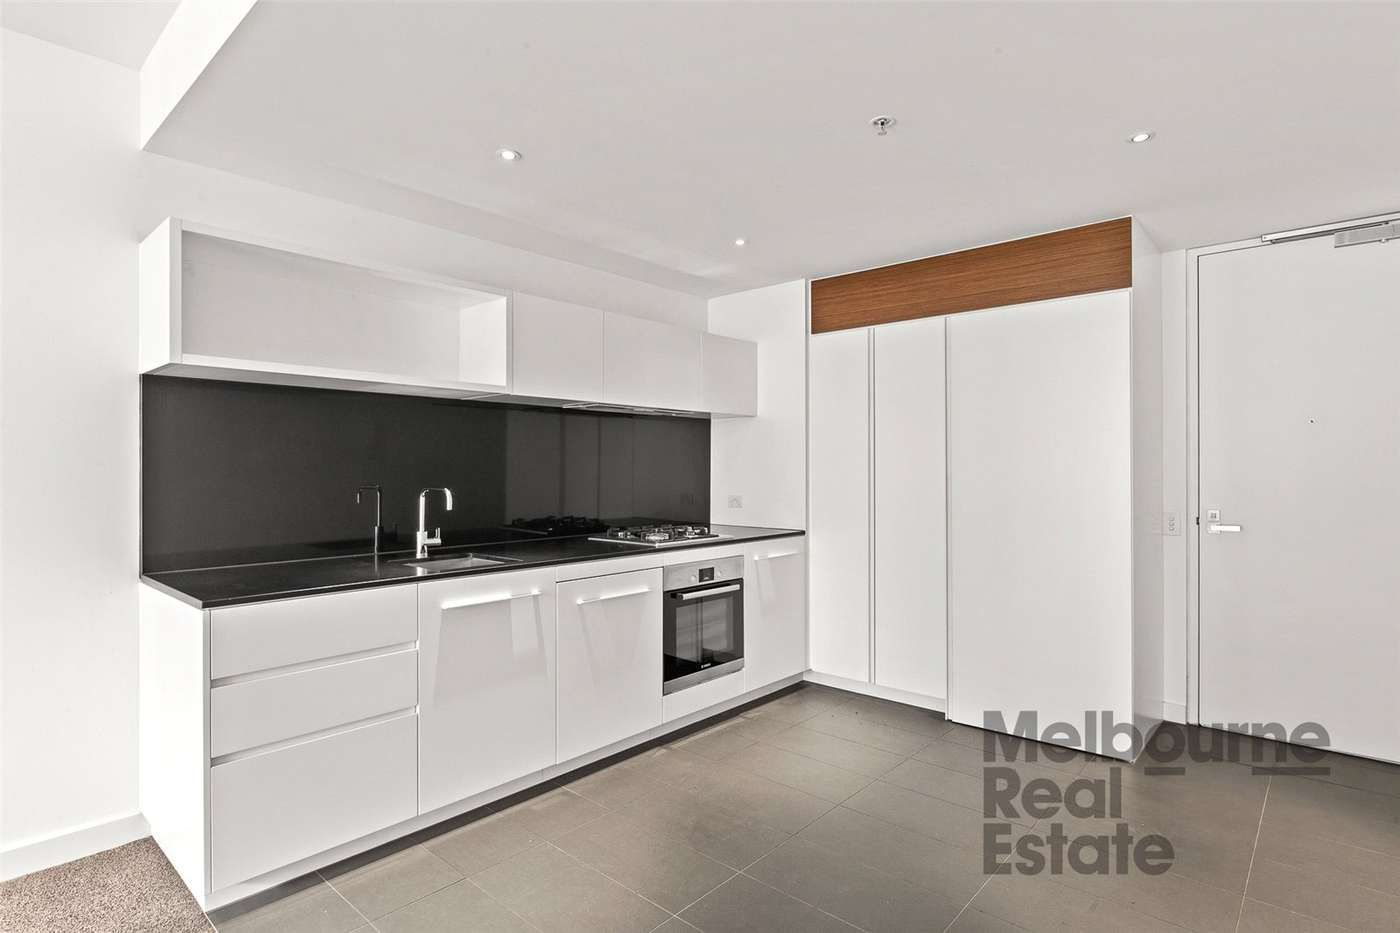 Main view of Homely apartment listing, 519/39 Coventry Street, Southbank, VIC 3006